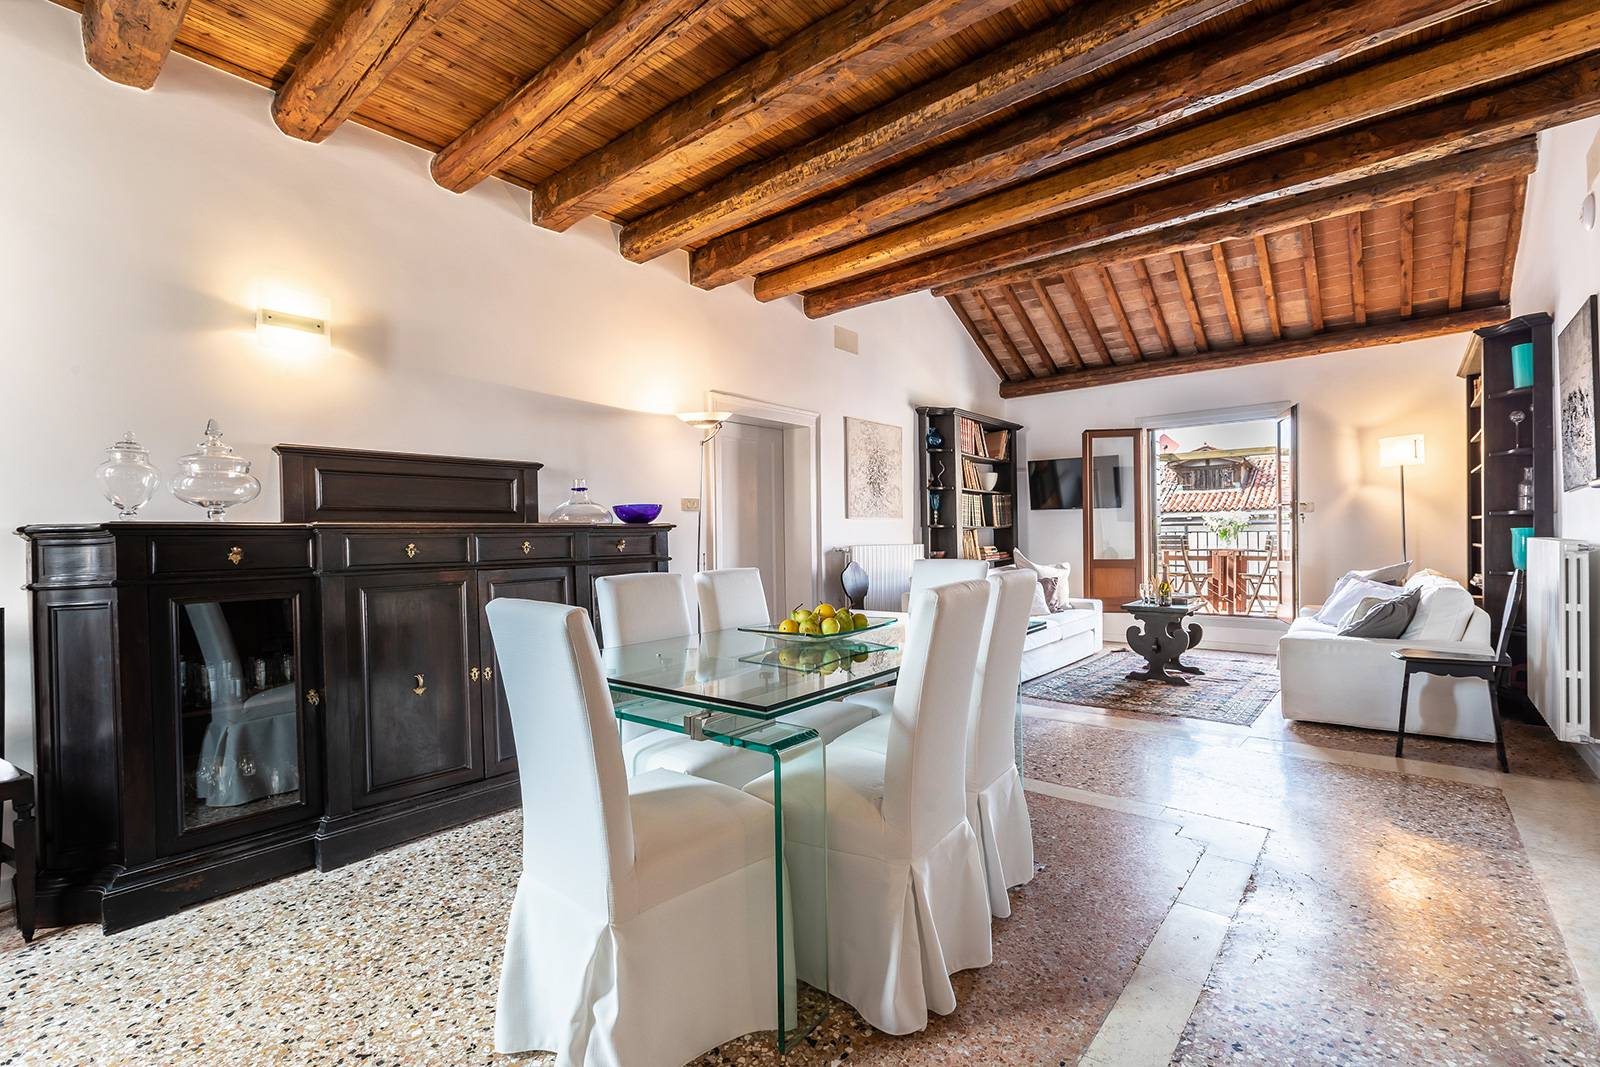 this is a truly Venetian Home with Terrazzo Veneziano flooring and antique wooden beams